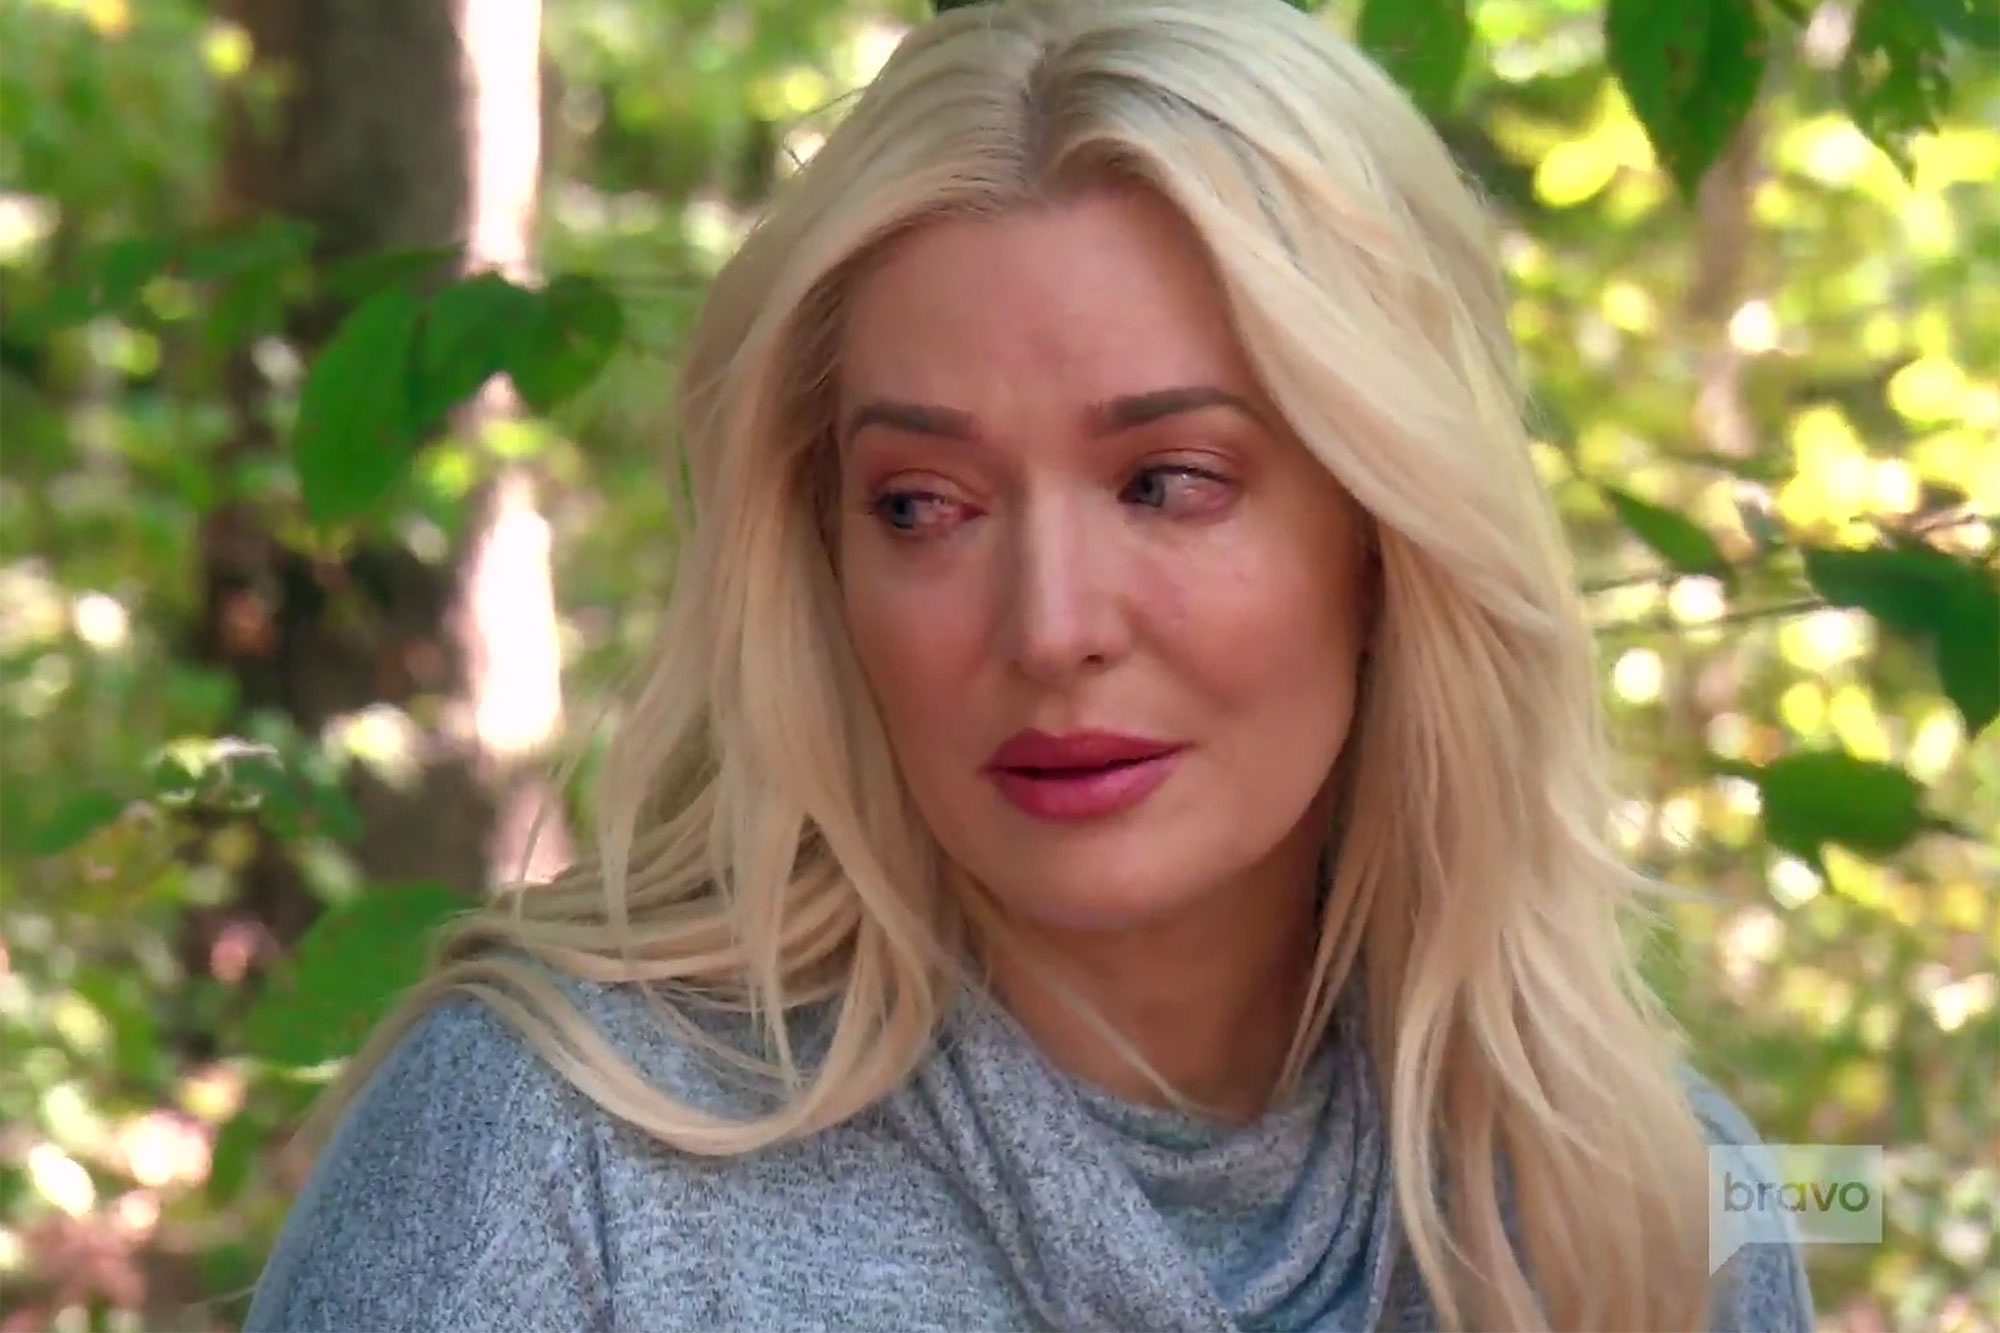 Erika Girardi Breaks Down Over Heartbreaking Family LossCredit: Bravo